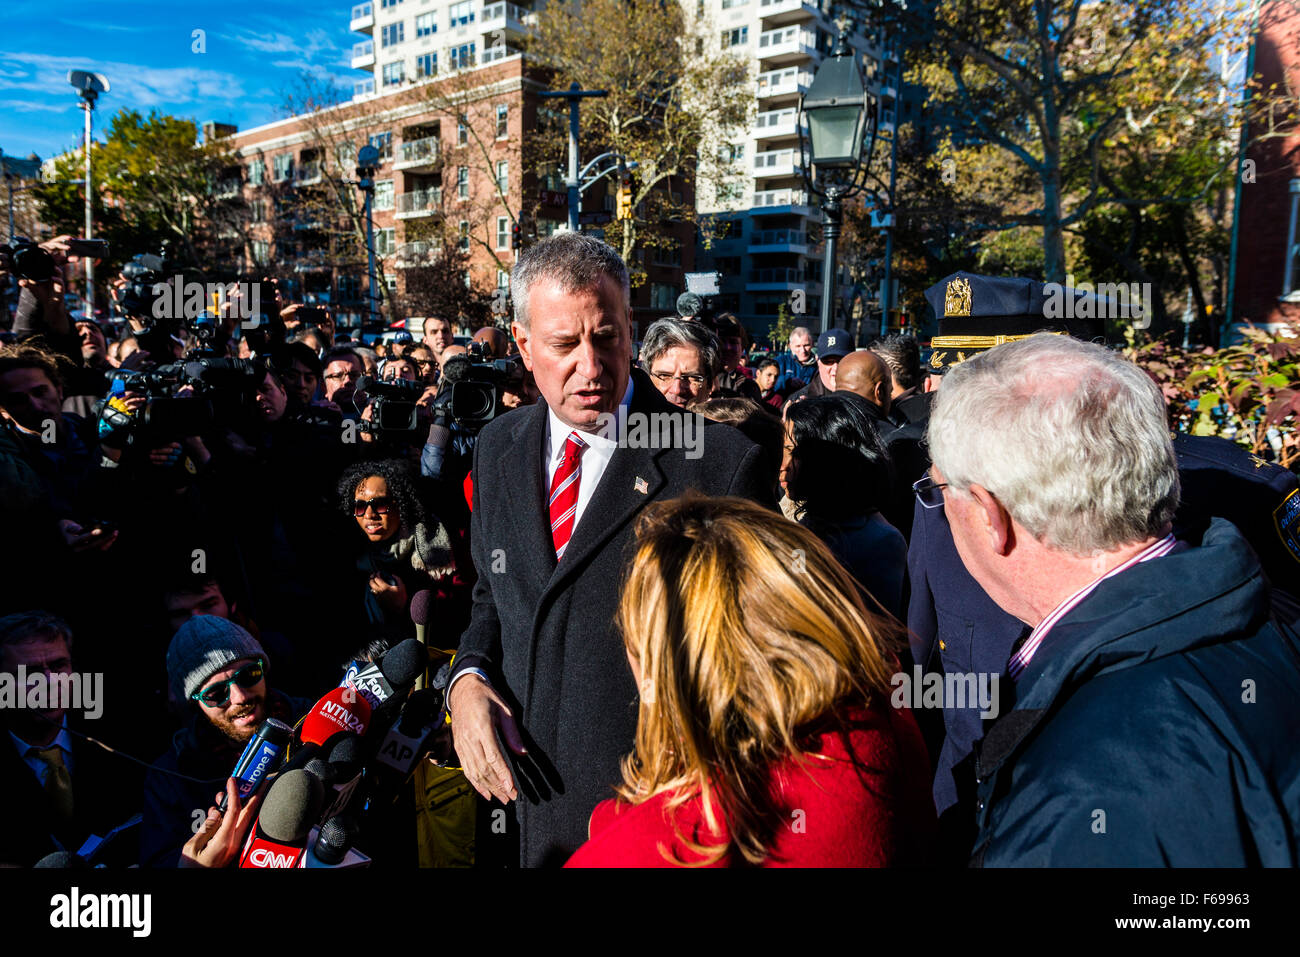 New York, NY - 14 November 2015 NYC  the Mayor Bill de Blasio speaks with the press after attending a vigil in Washington - Stock Image